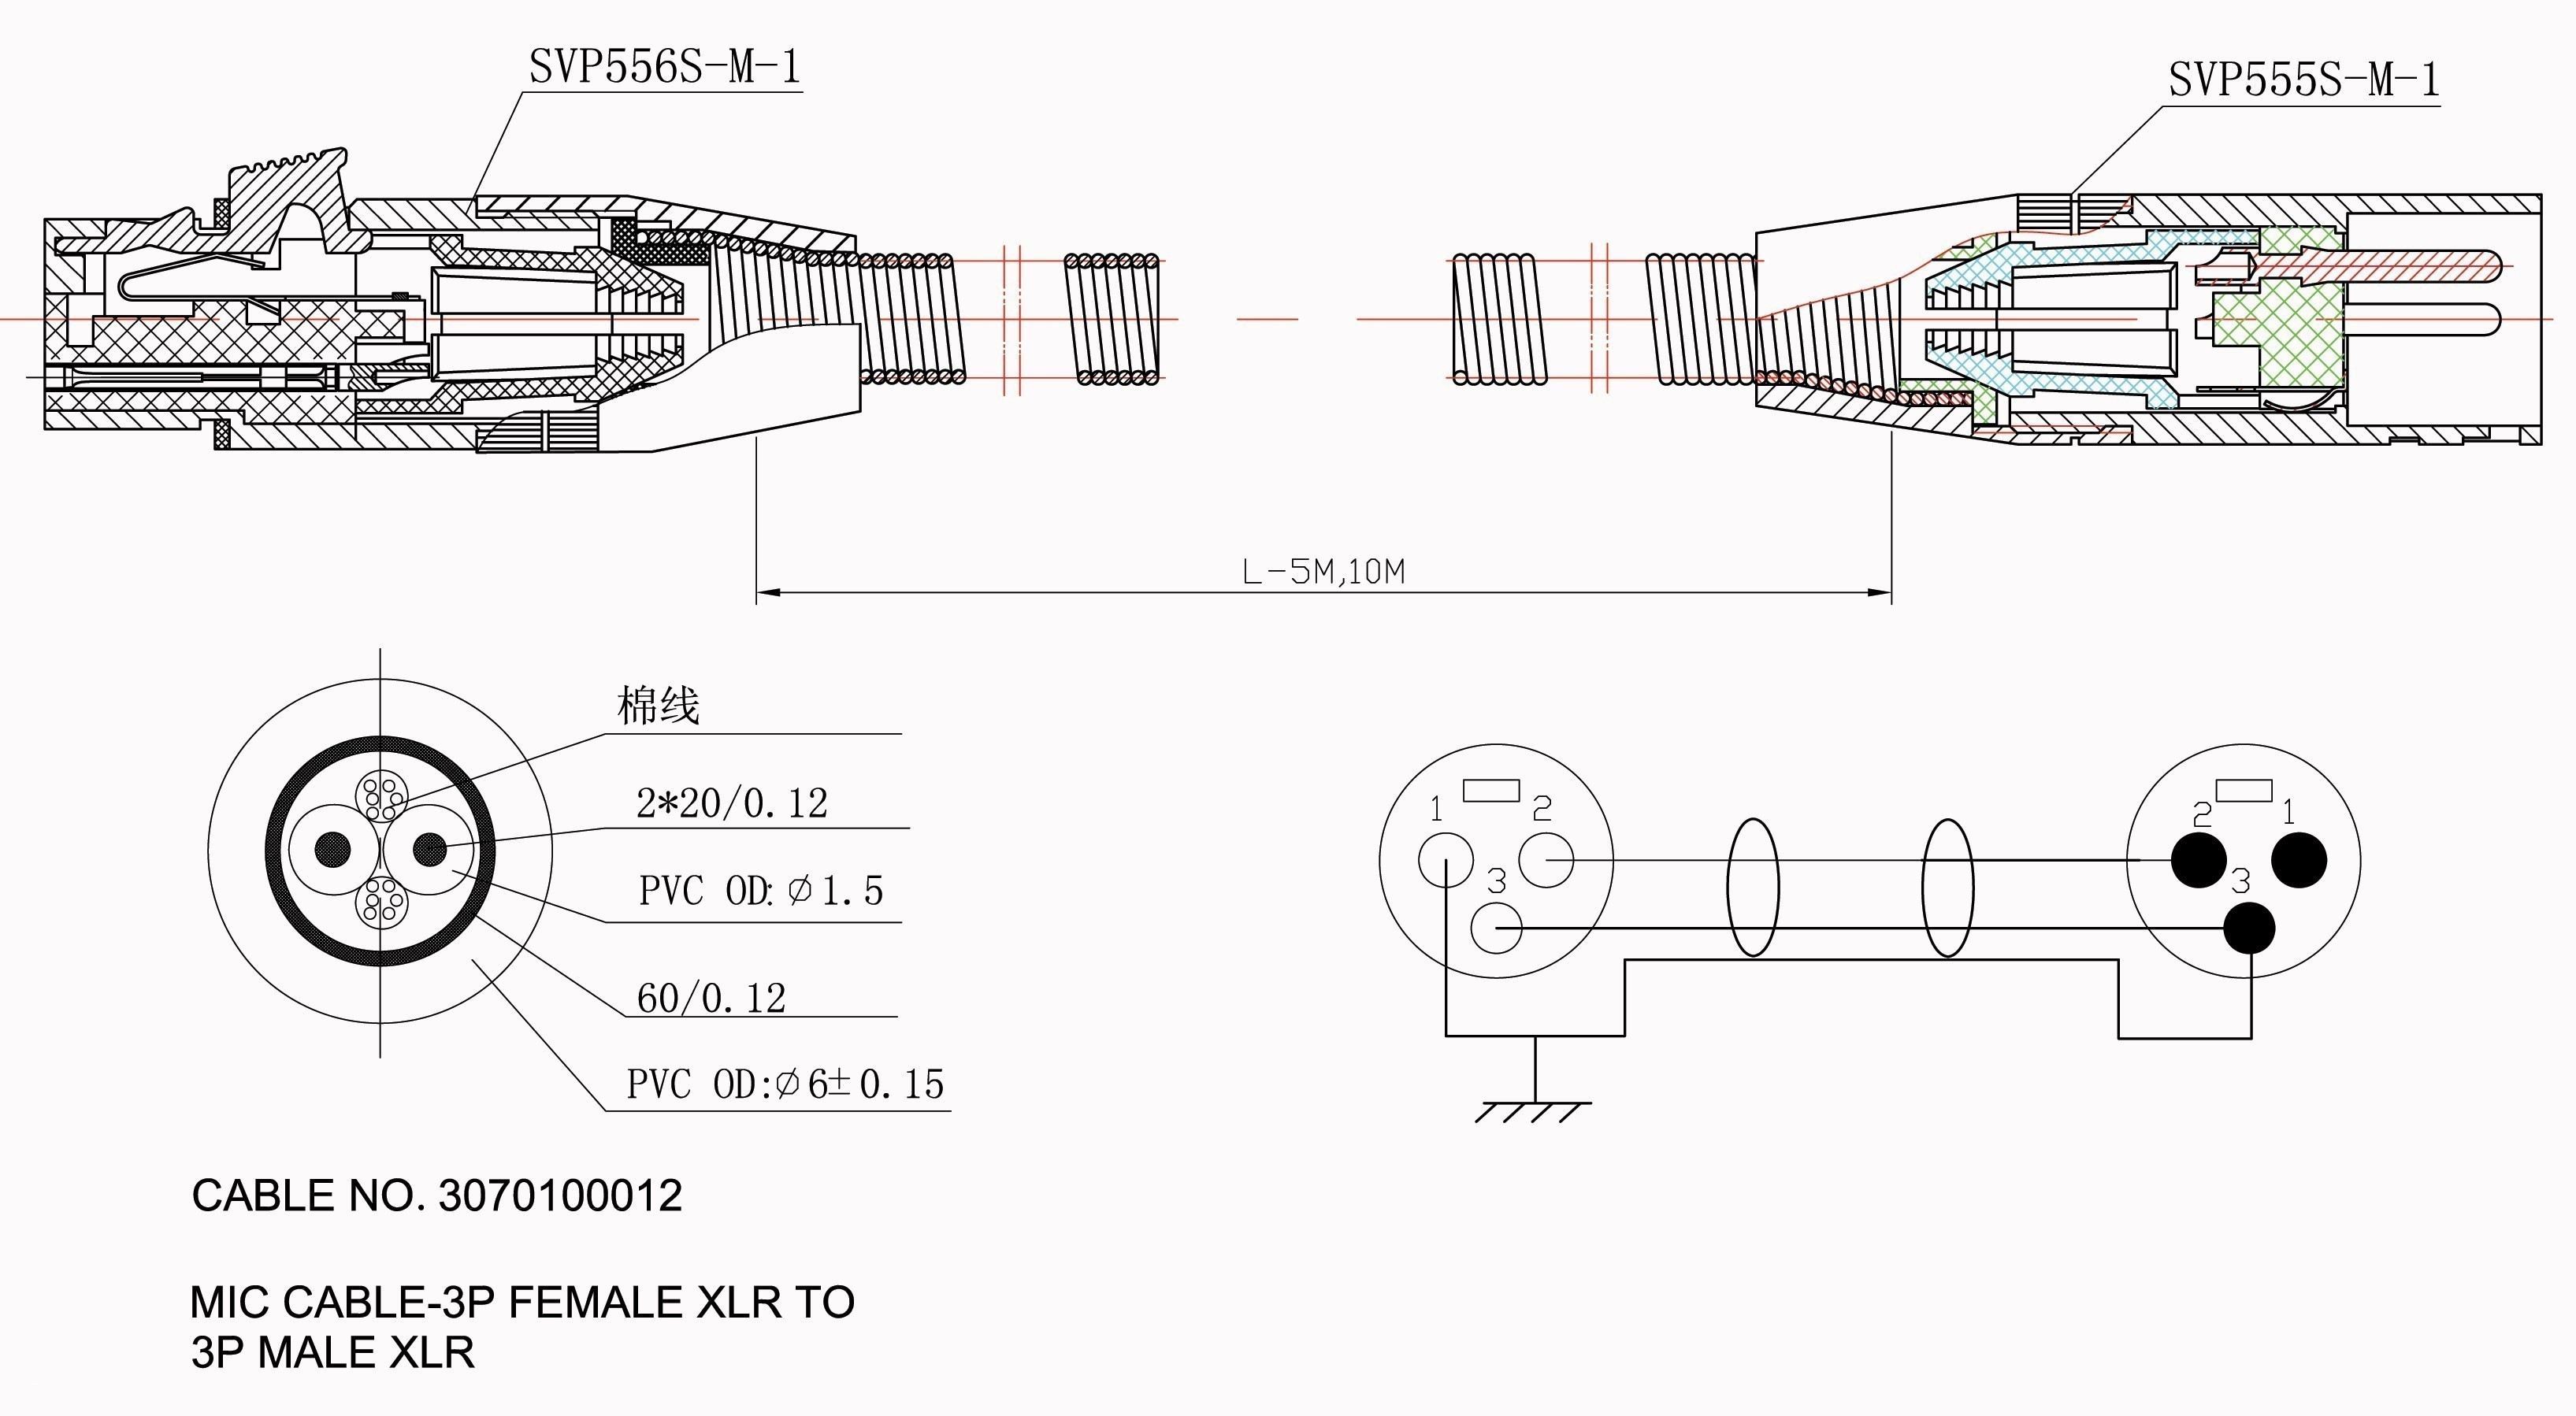 1999 ford f250 wiring diagram inspirational 7 3 international glow plug wiring diagram wire center e280a2 of 1999 ford f250 wiring diagram